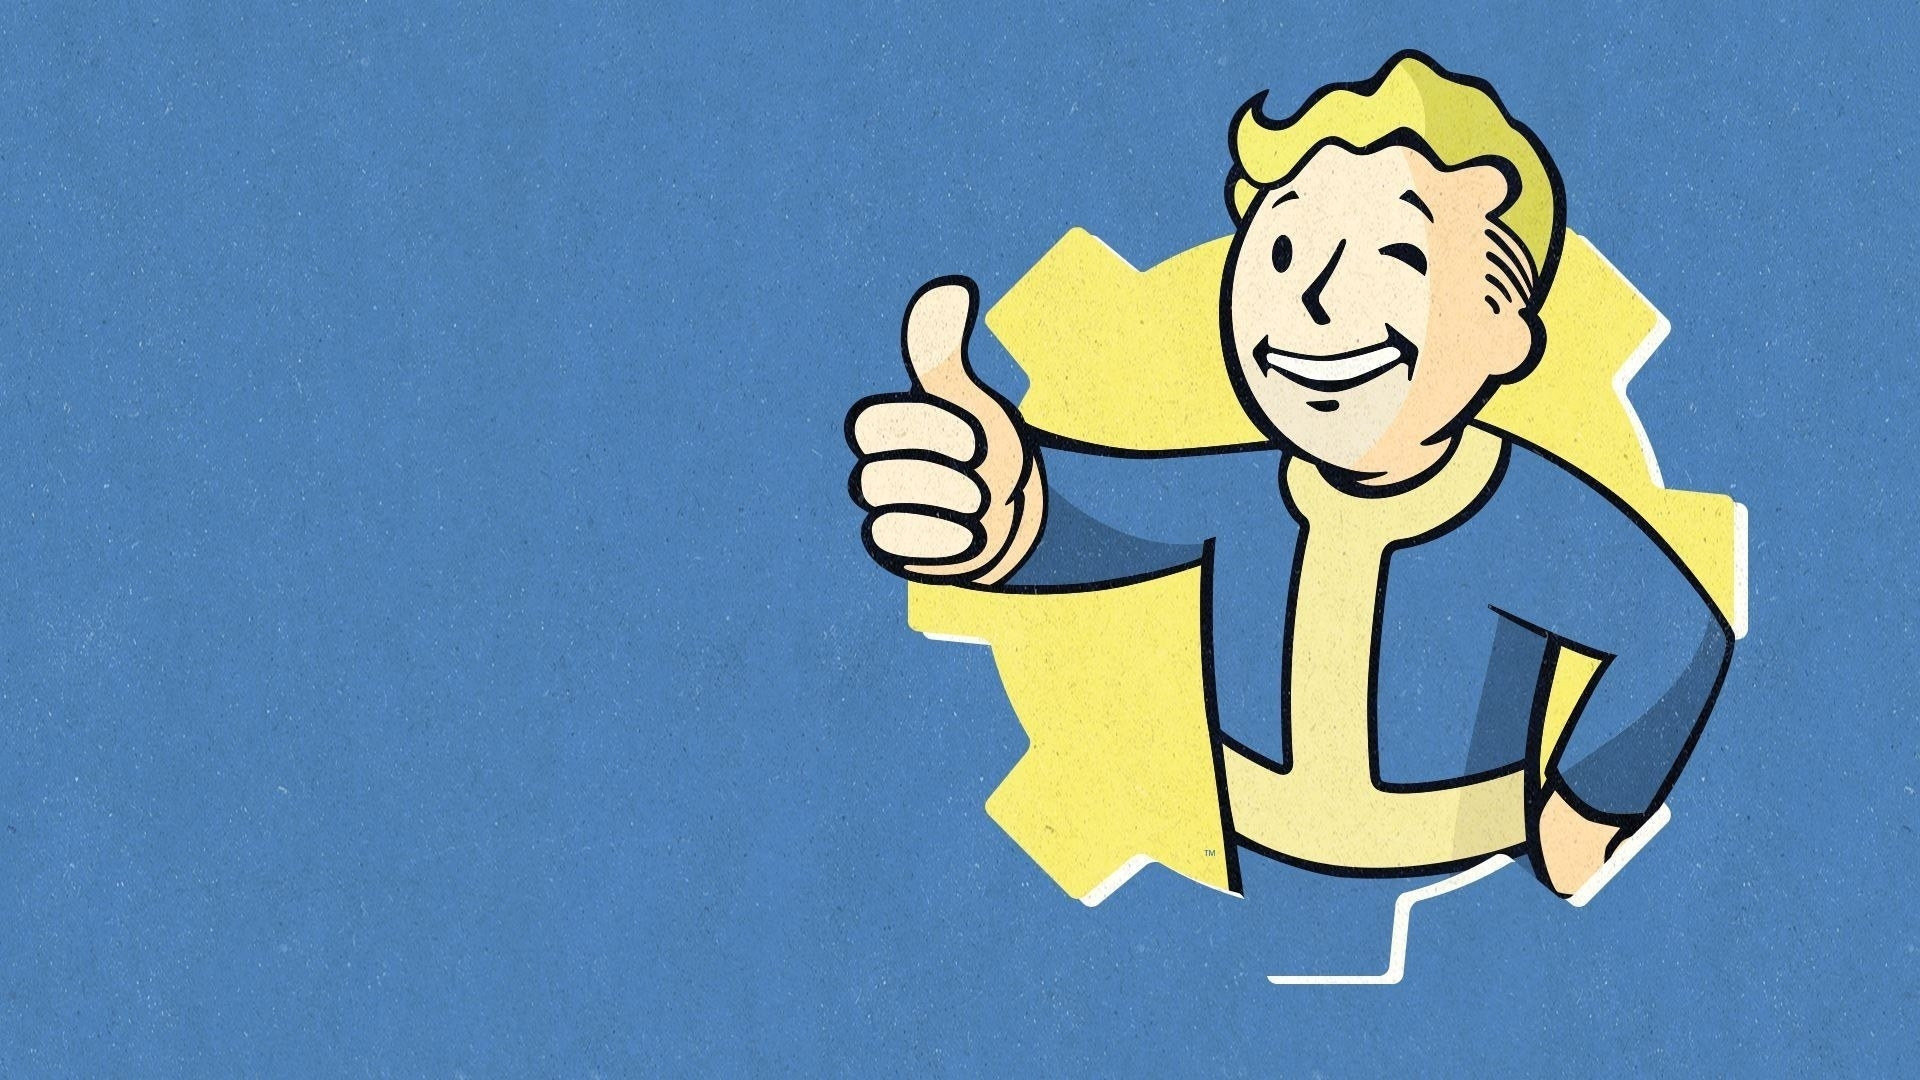 vault boy wallpaper (73+ images)